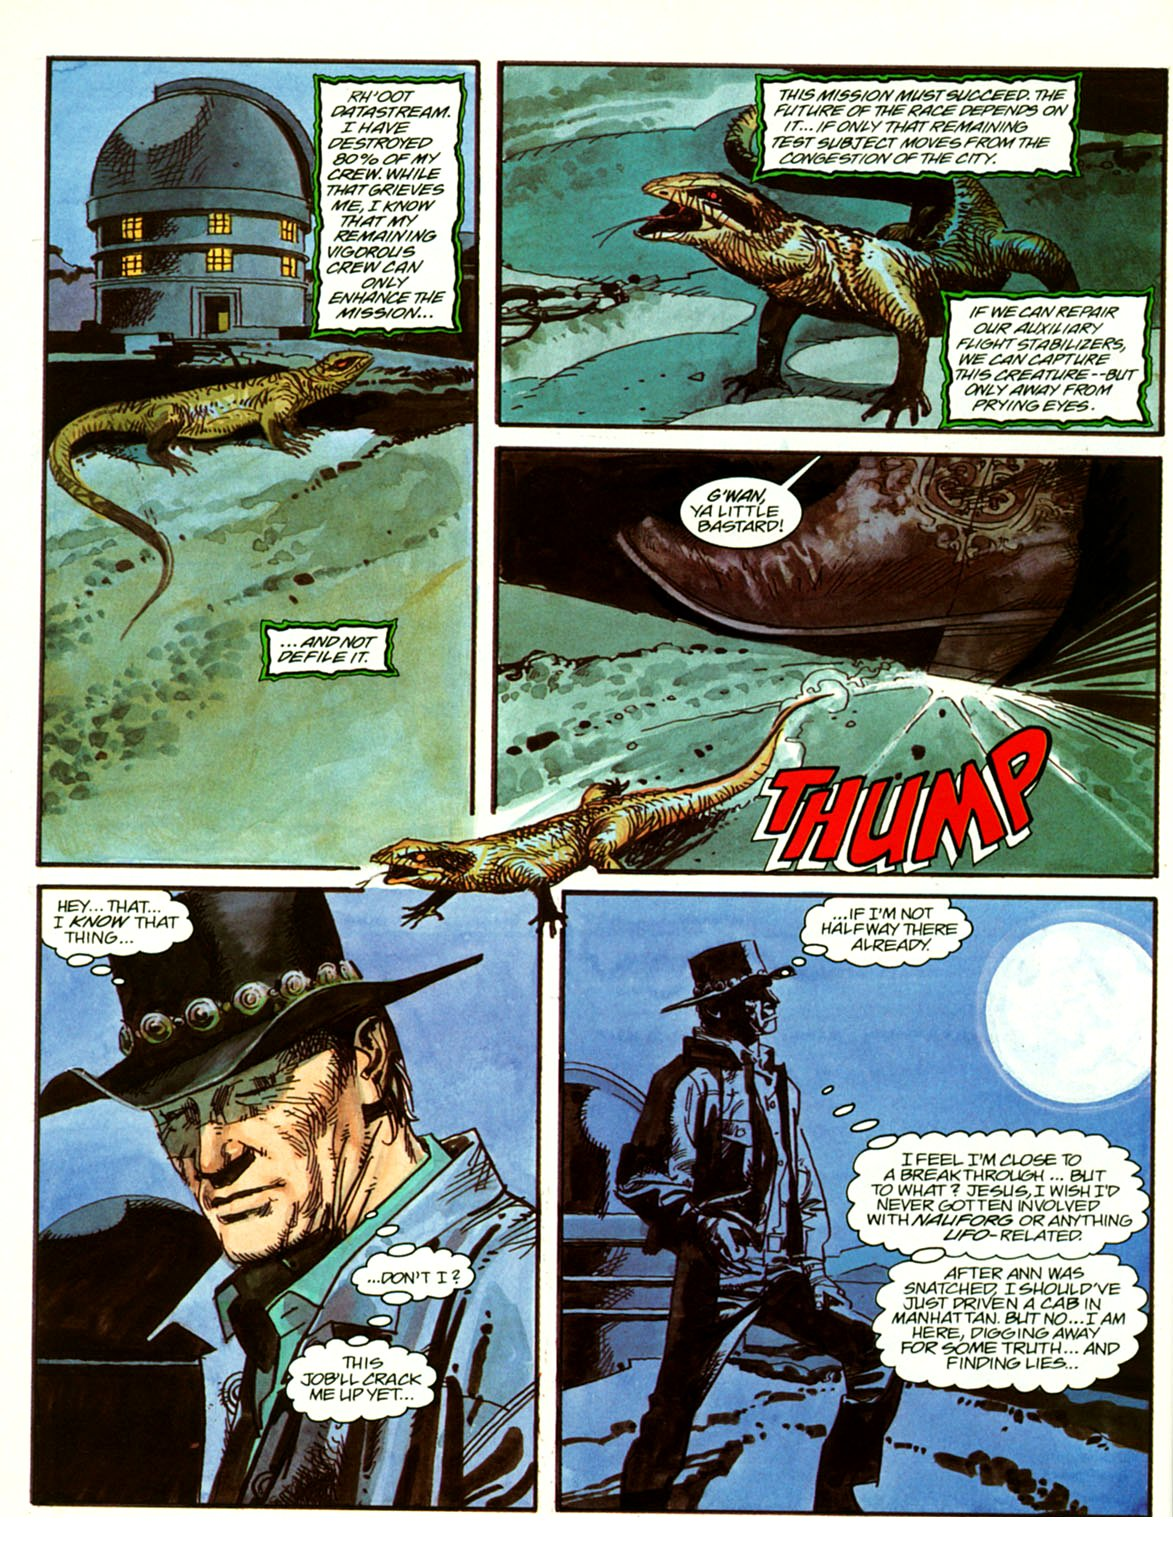 Abducted by Aliens 1 by John Burns, George Caragonne